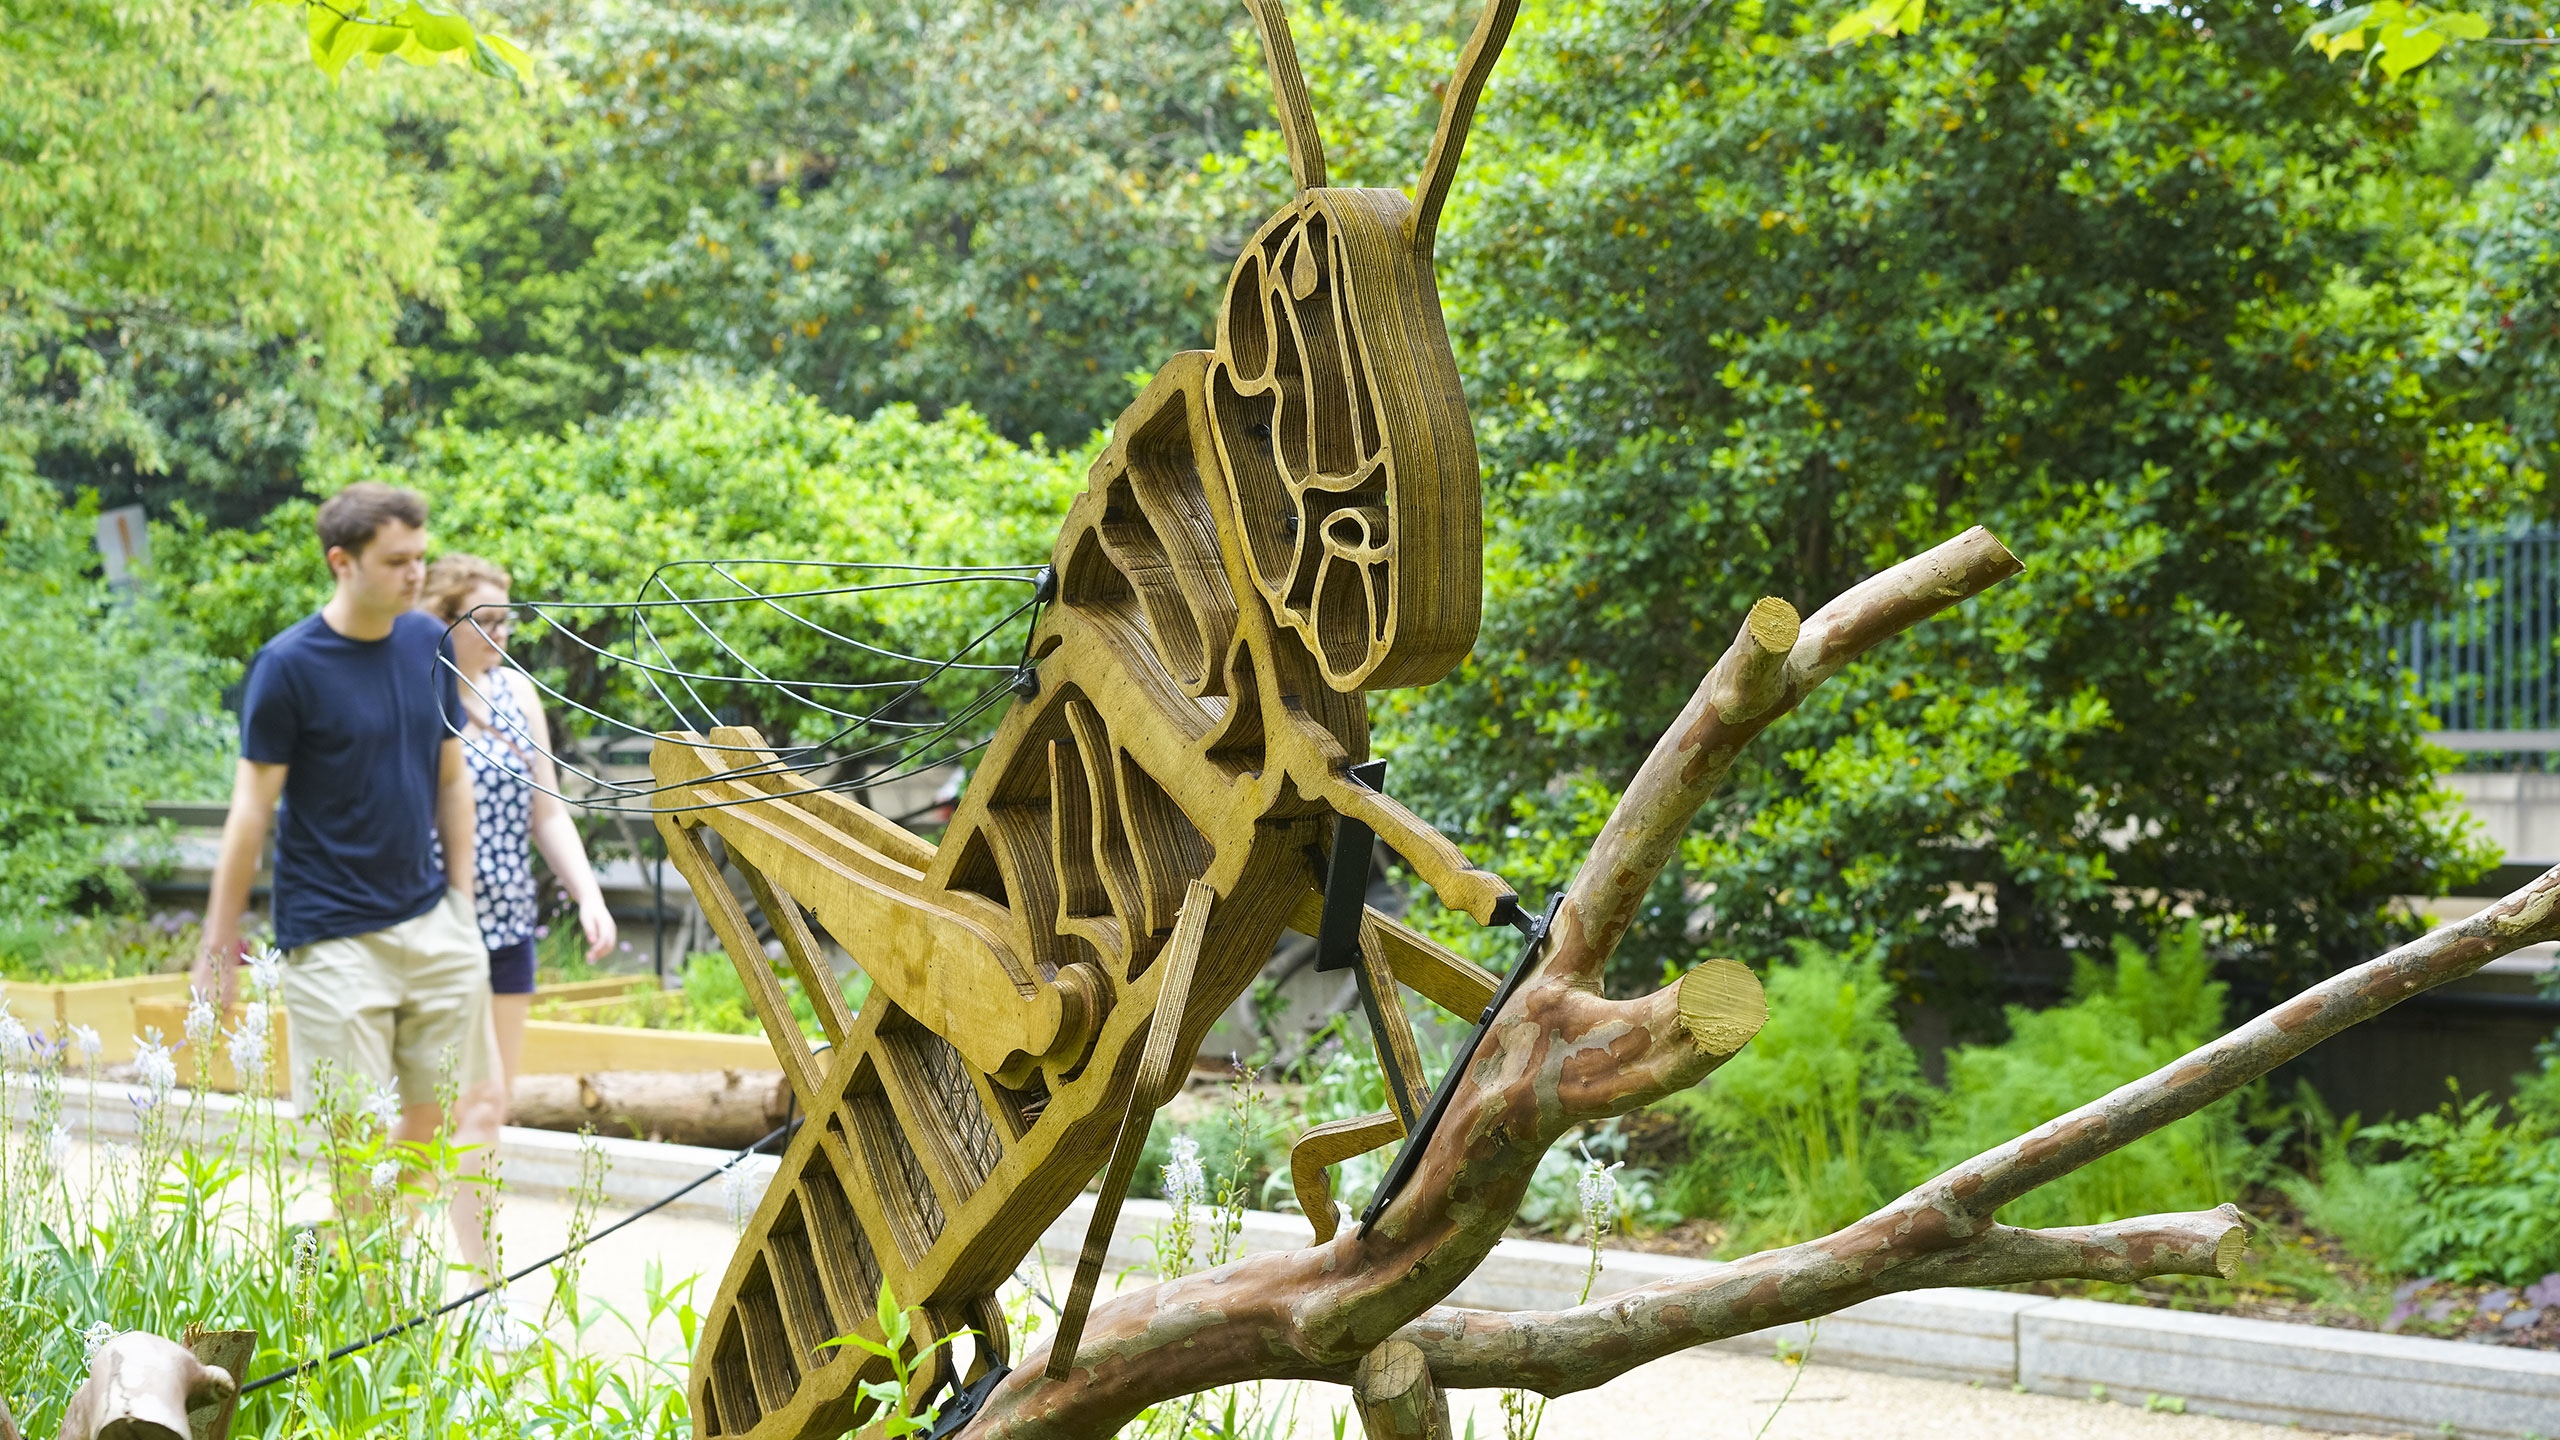 Bug sculpture outside of the National Museum of American History